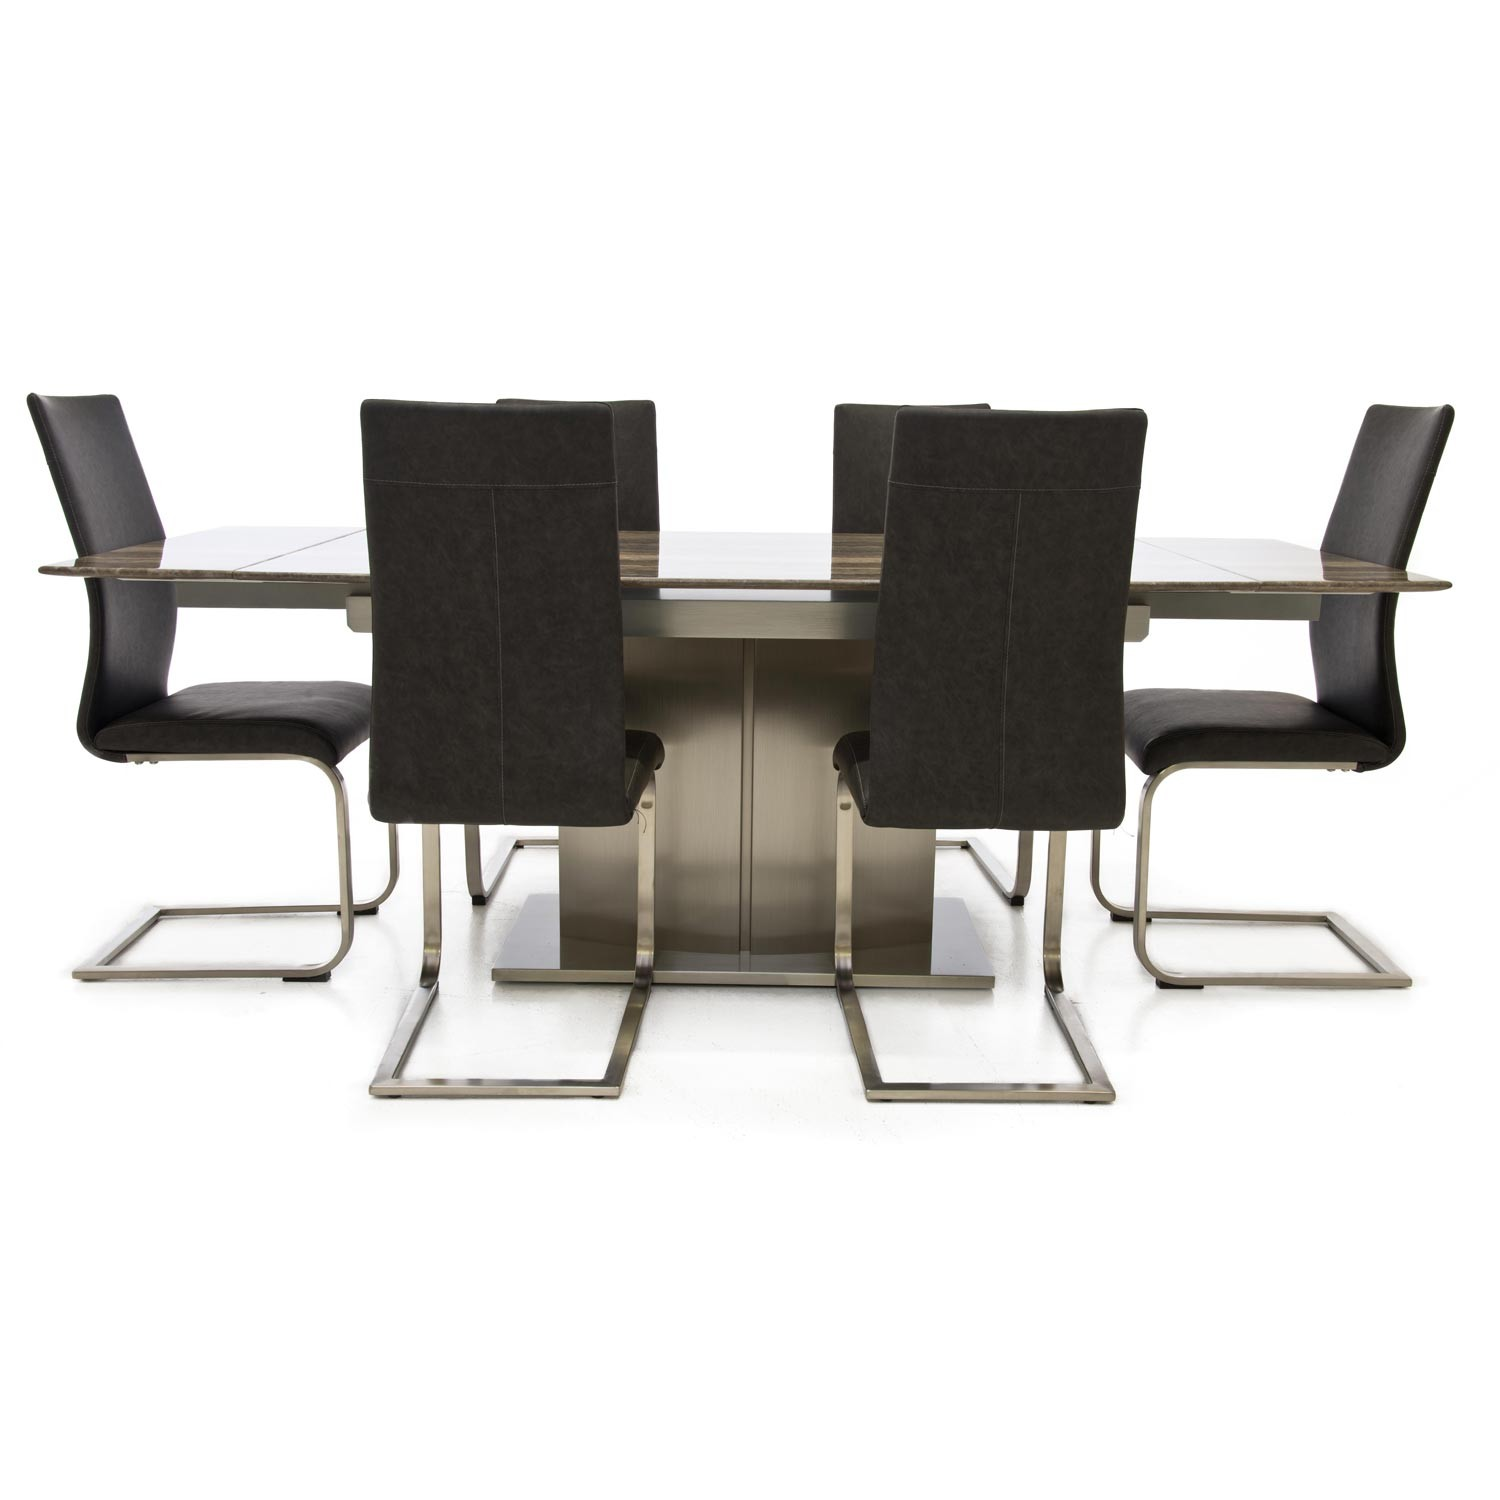 Casa wave dining table 6 chairs leekes for Table and 6 chairs uk